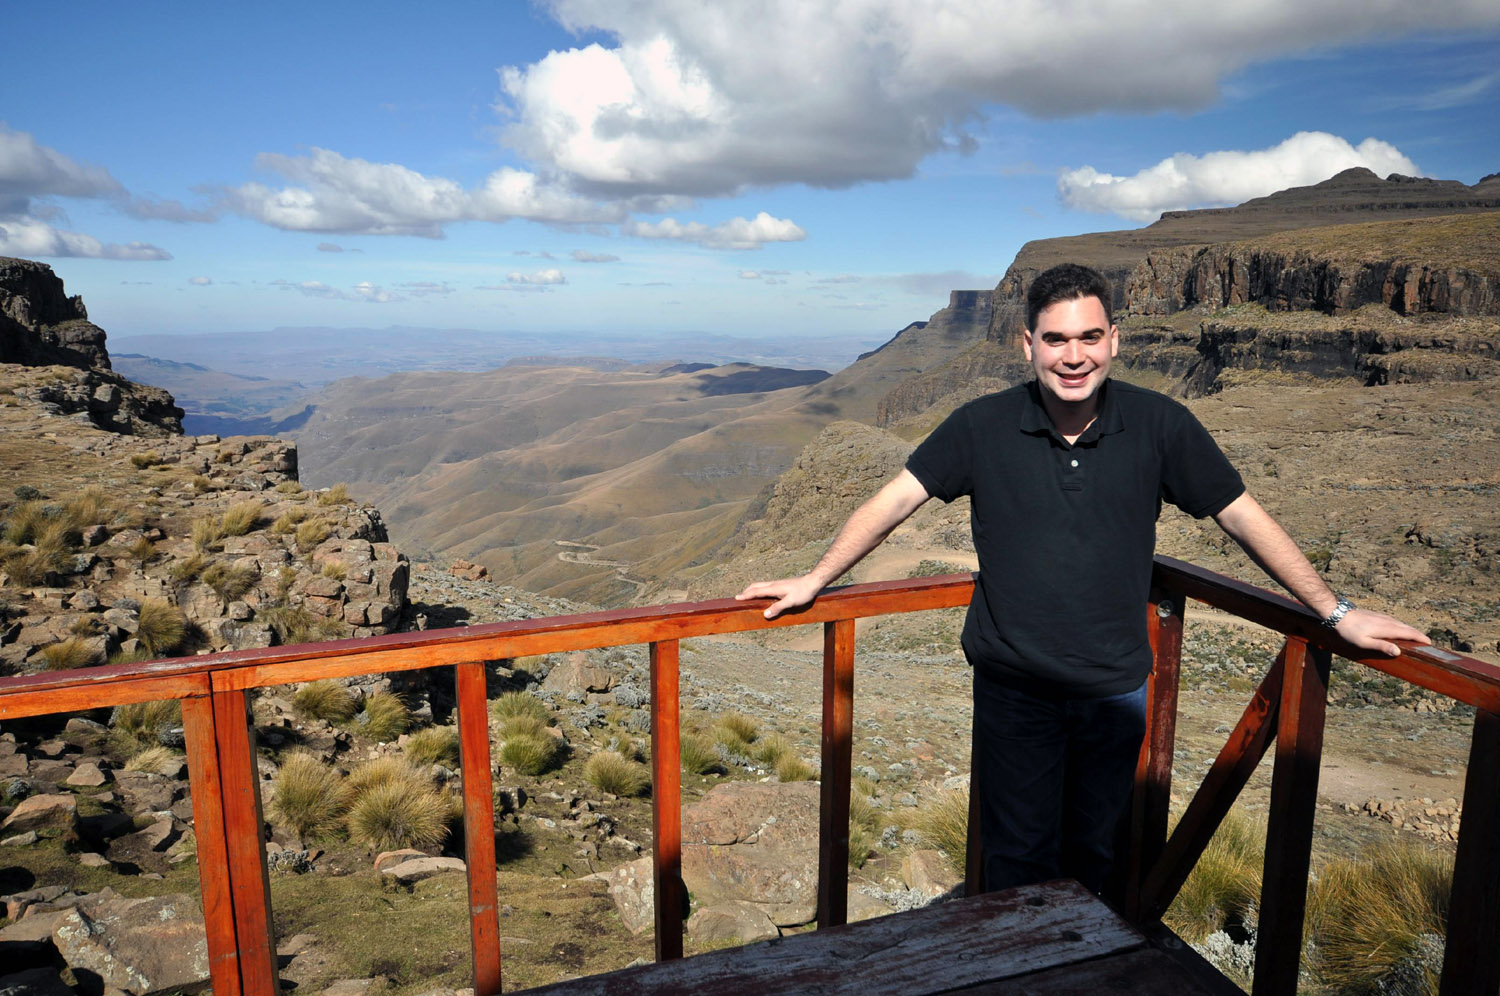 Dave overlooking the Sani Pass in South Africa from the Sani Top Chalet in Lesotho